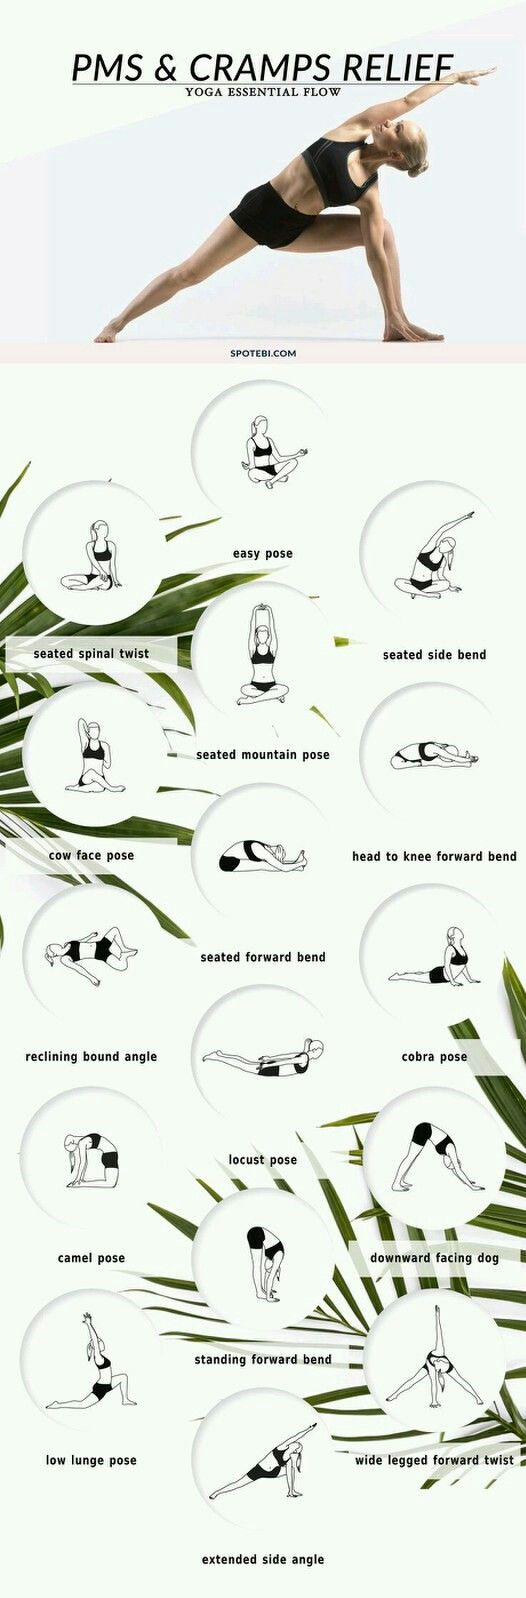 PMs and Cramps Relief Yoga Workout | Posted by: NewHowtoLoseBellyFat.com